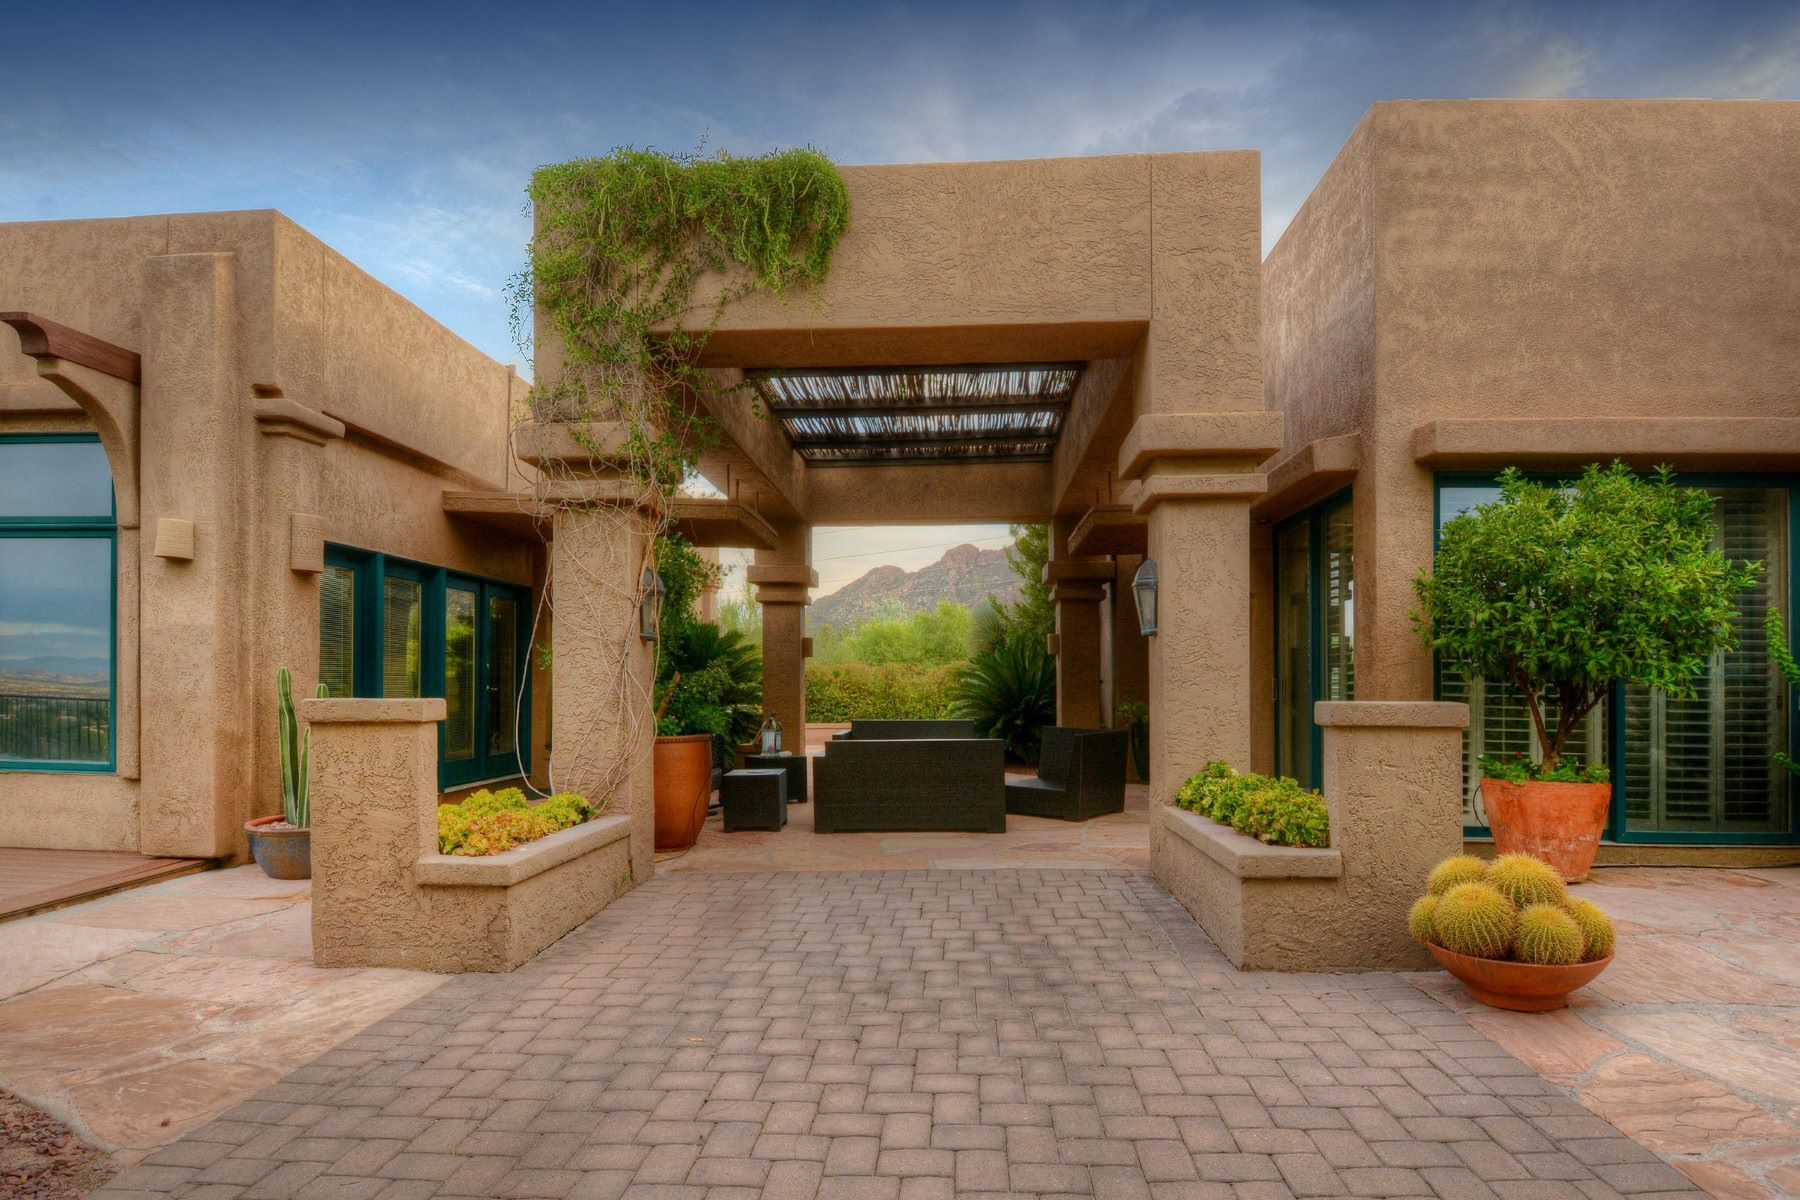 단독 가정 주택 용 매매 에 Stunning Desert Contemporary artistic oasis retreat 6925 N Chaparral Place Tucson, 아리조나, 85718 미국